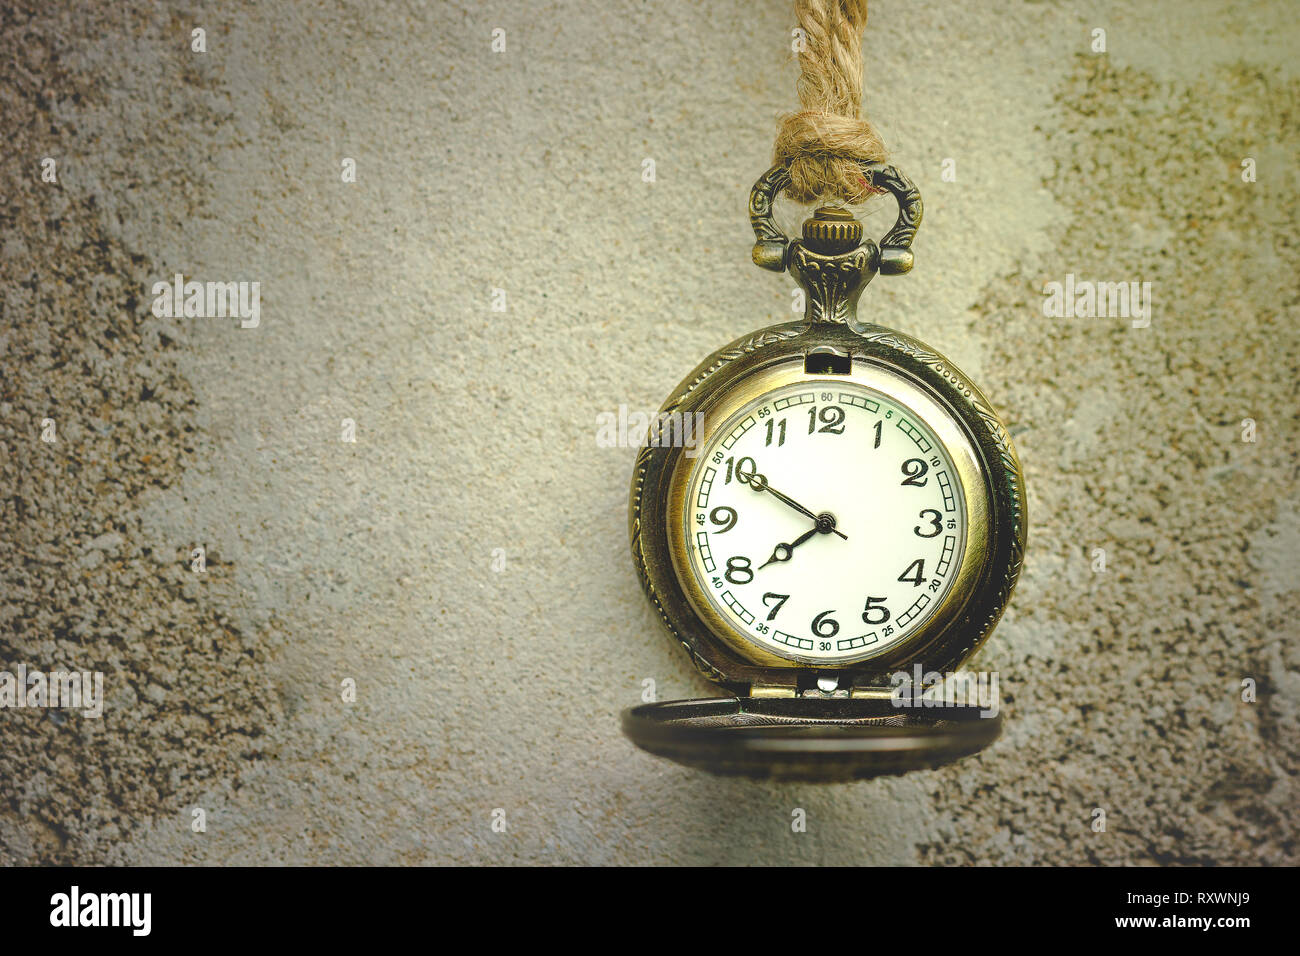 The morning sunlight shines into the ancient old vintage clock, which is tied with hemp rope hanging beside to the cement wall. - Stock Image